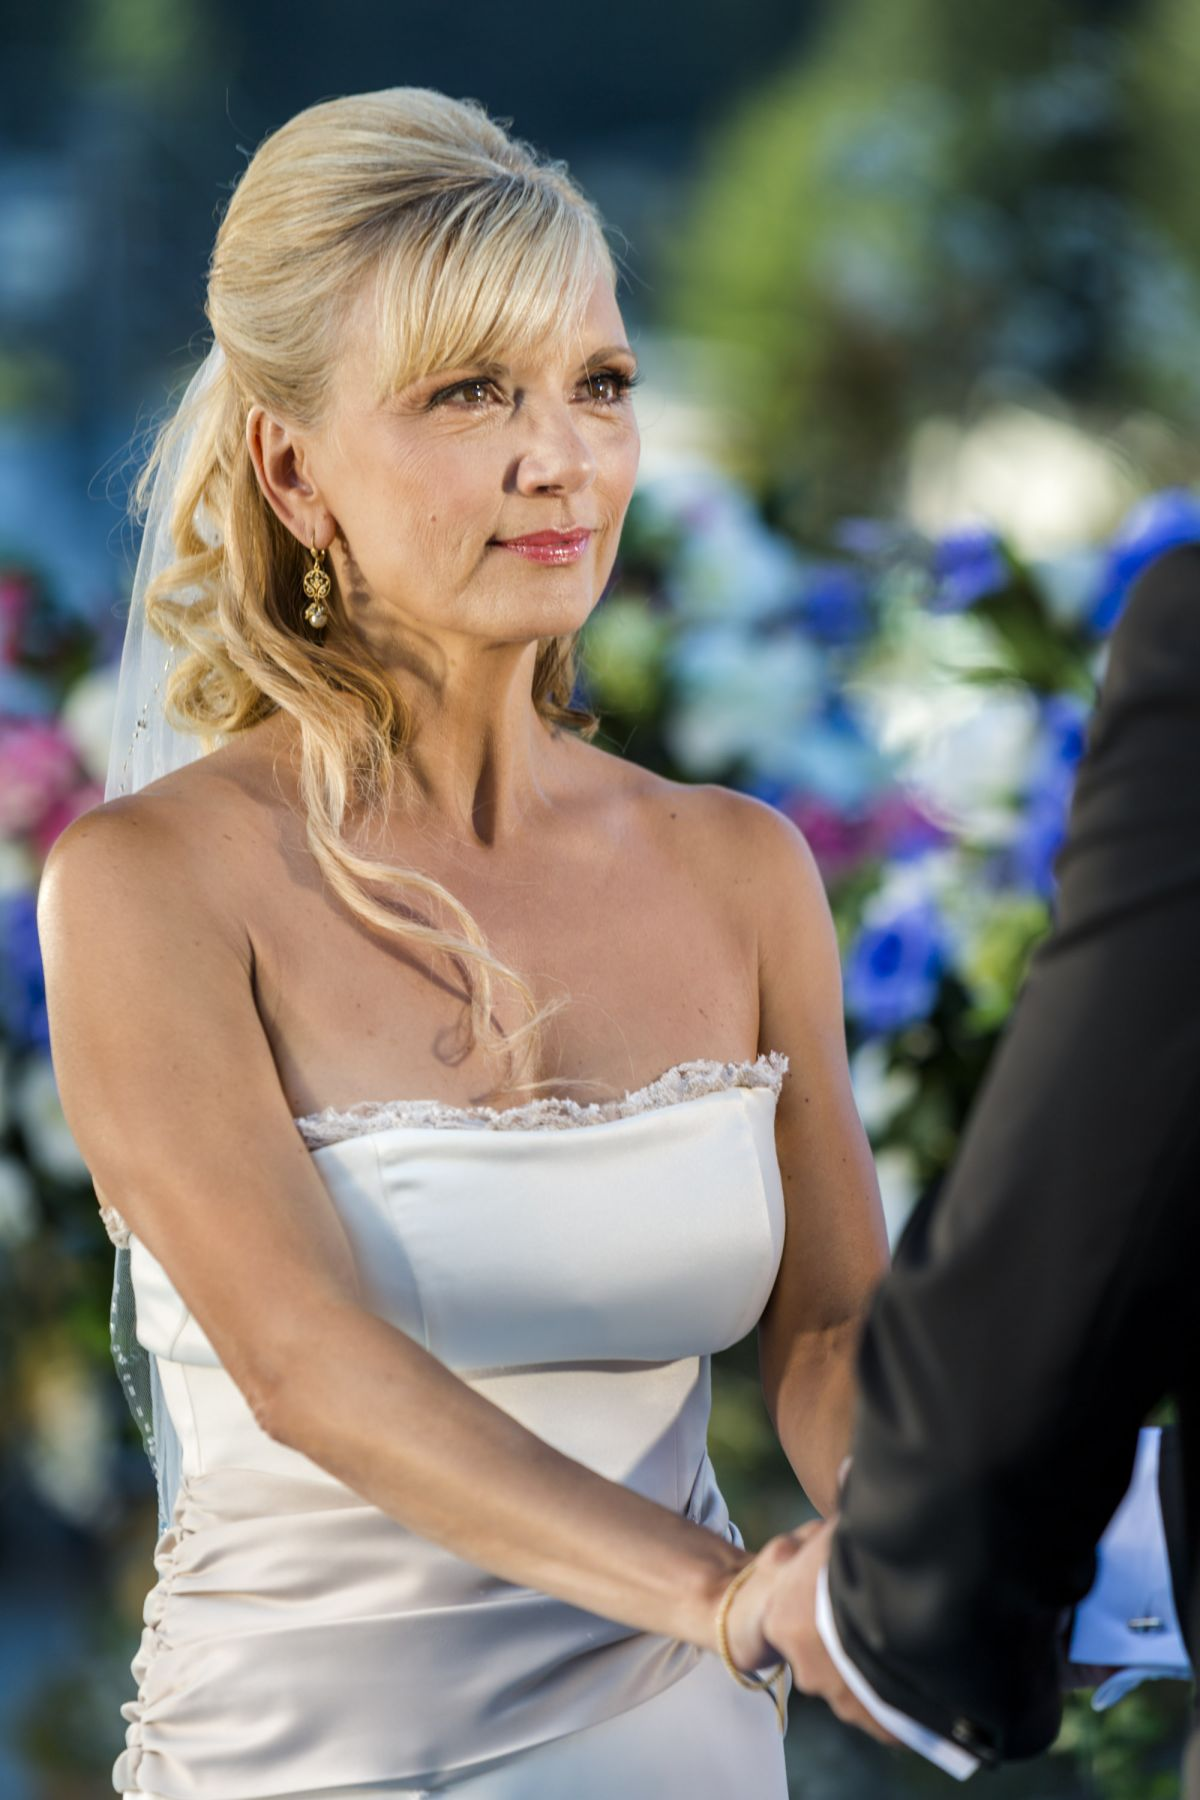 teryl rothery measurementsteryl rothery 2016, teryl rothery young, teryl rothery, teryl rothery imdb, teryl rothery married, teryl rothery weight loss, teryl rothery measurements, teryl rothery twitter, teryl rothery movies and tv shows, teryl rothery death, teryl rothery height, teryl rothery supernatural